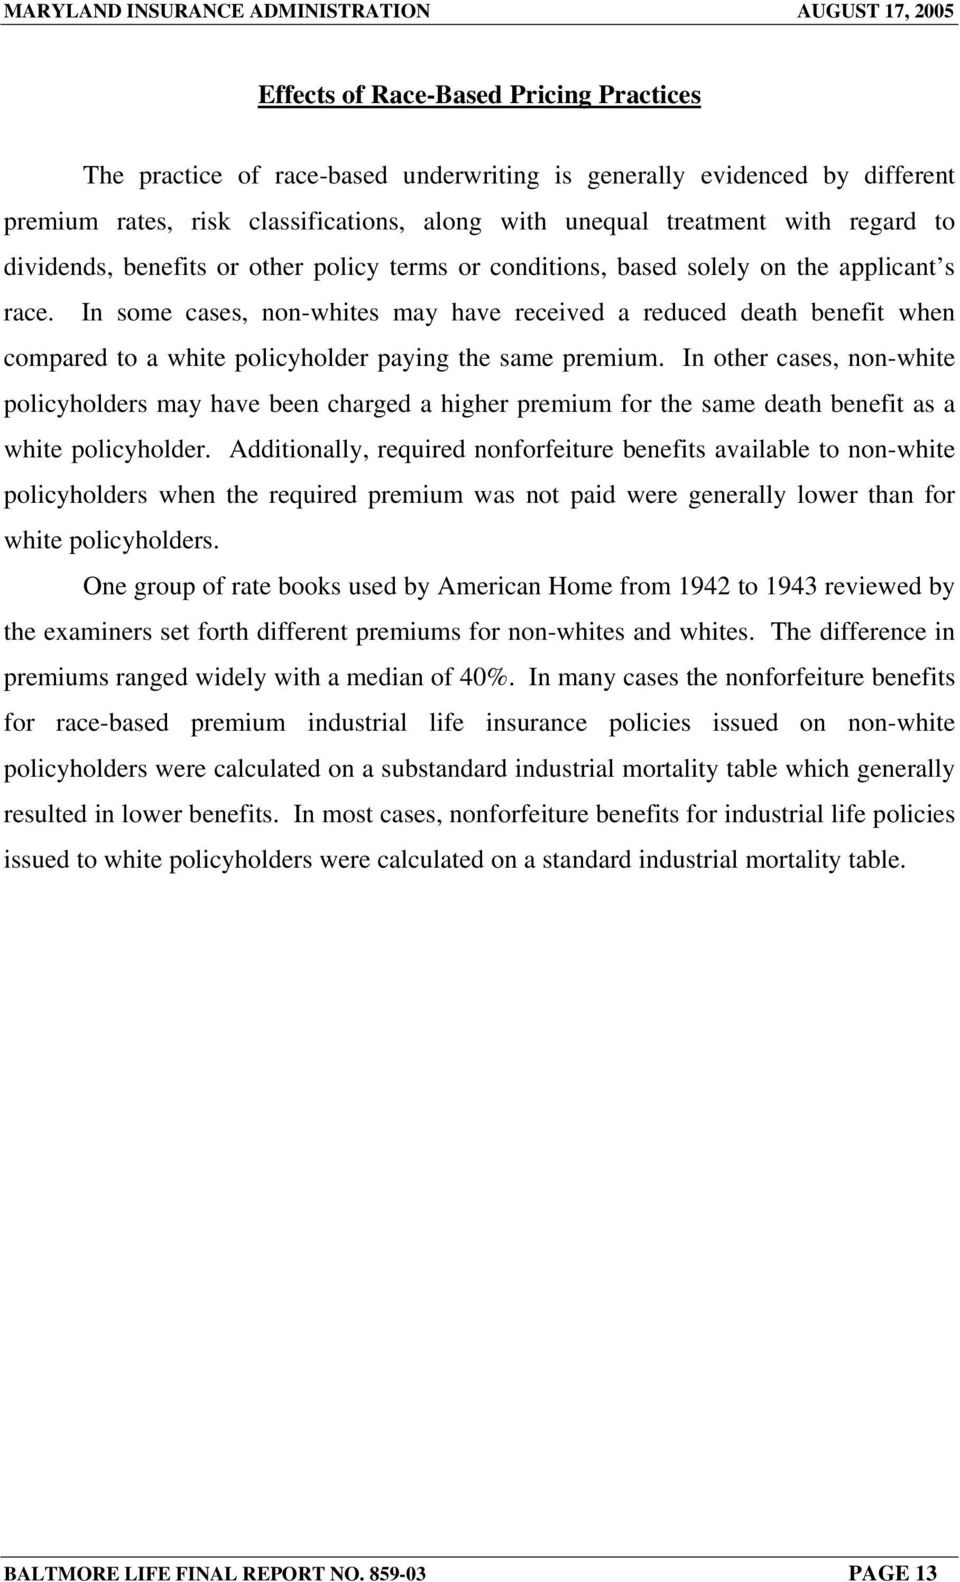 In some cases, non-whites may have received a reduced death benefit when compared to a white policyholder paying the same premium.